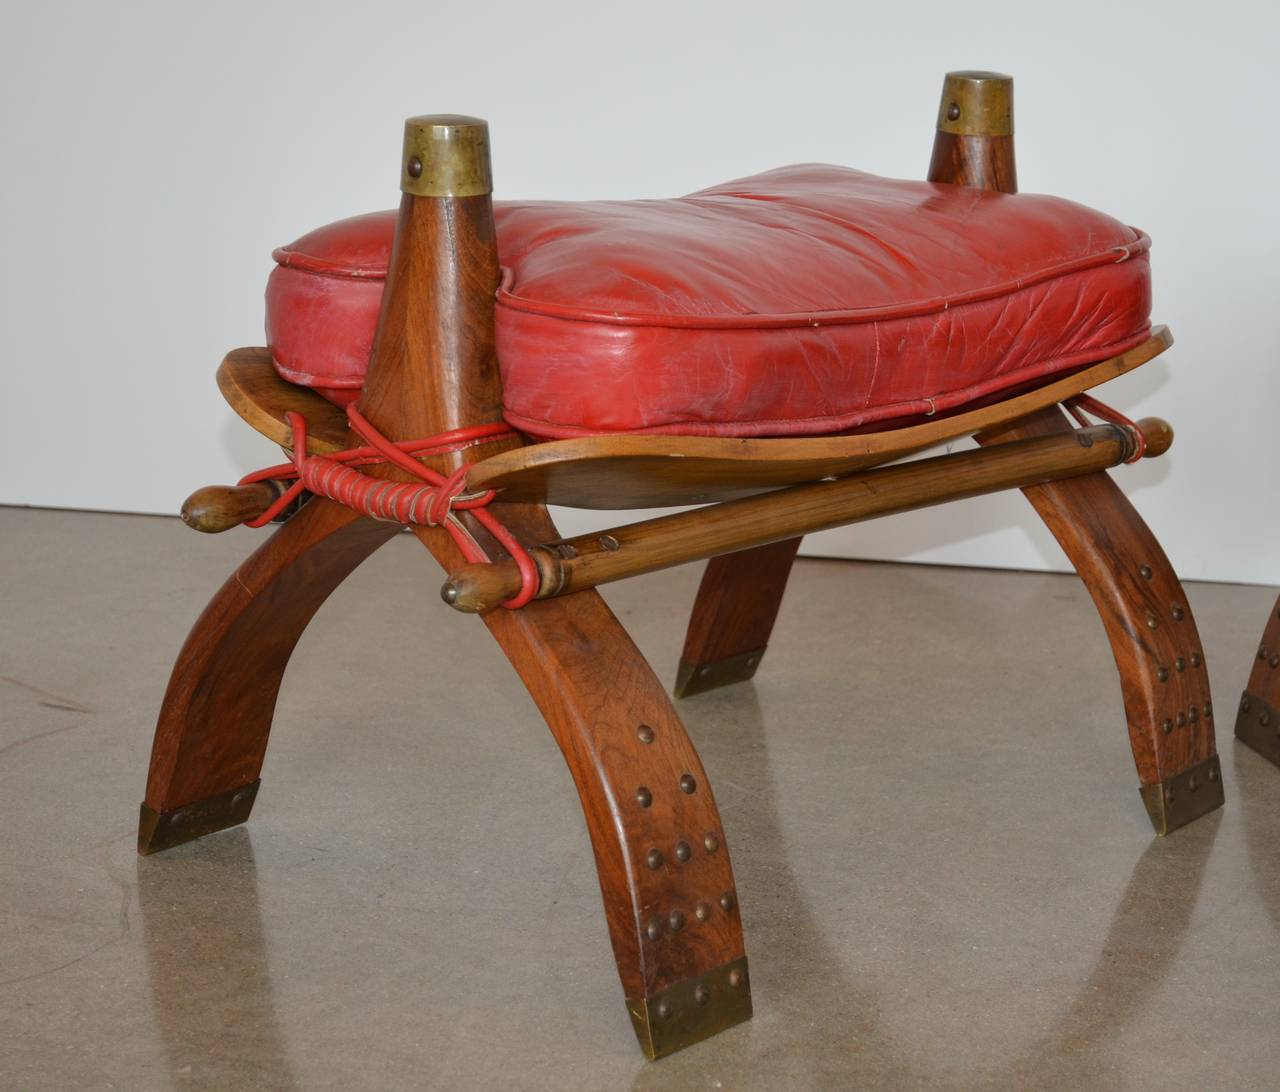 Antique Camel Saddle Best 2000 Antique Decor Ideas